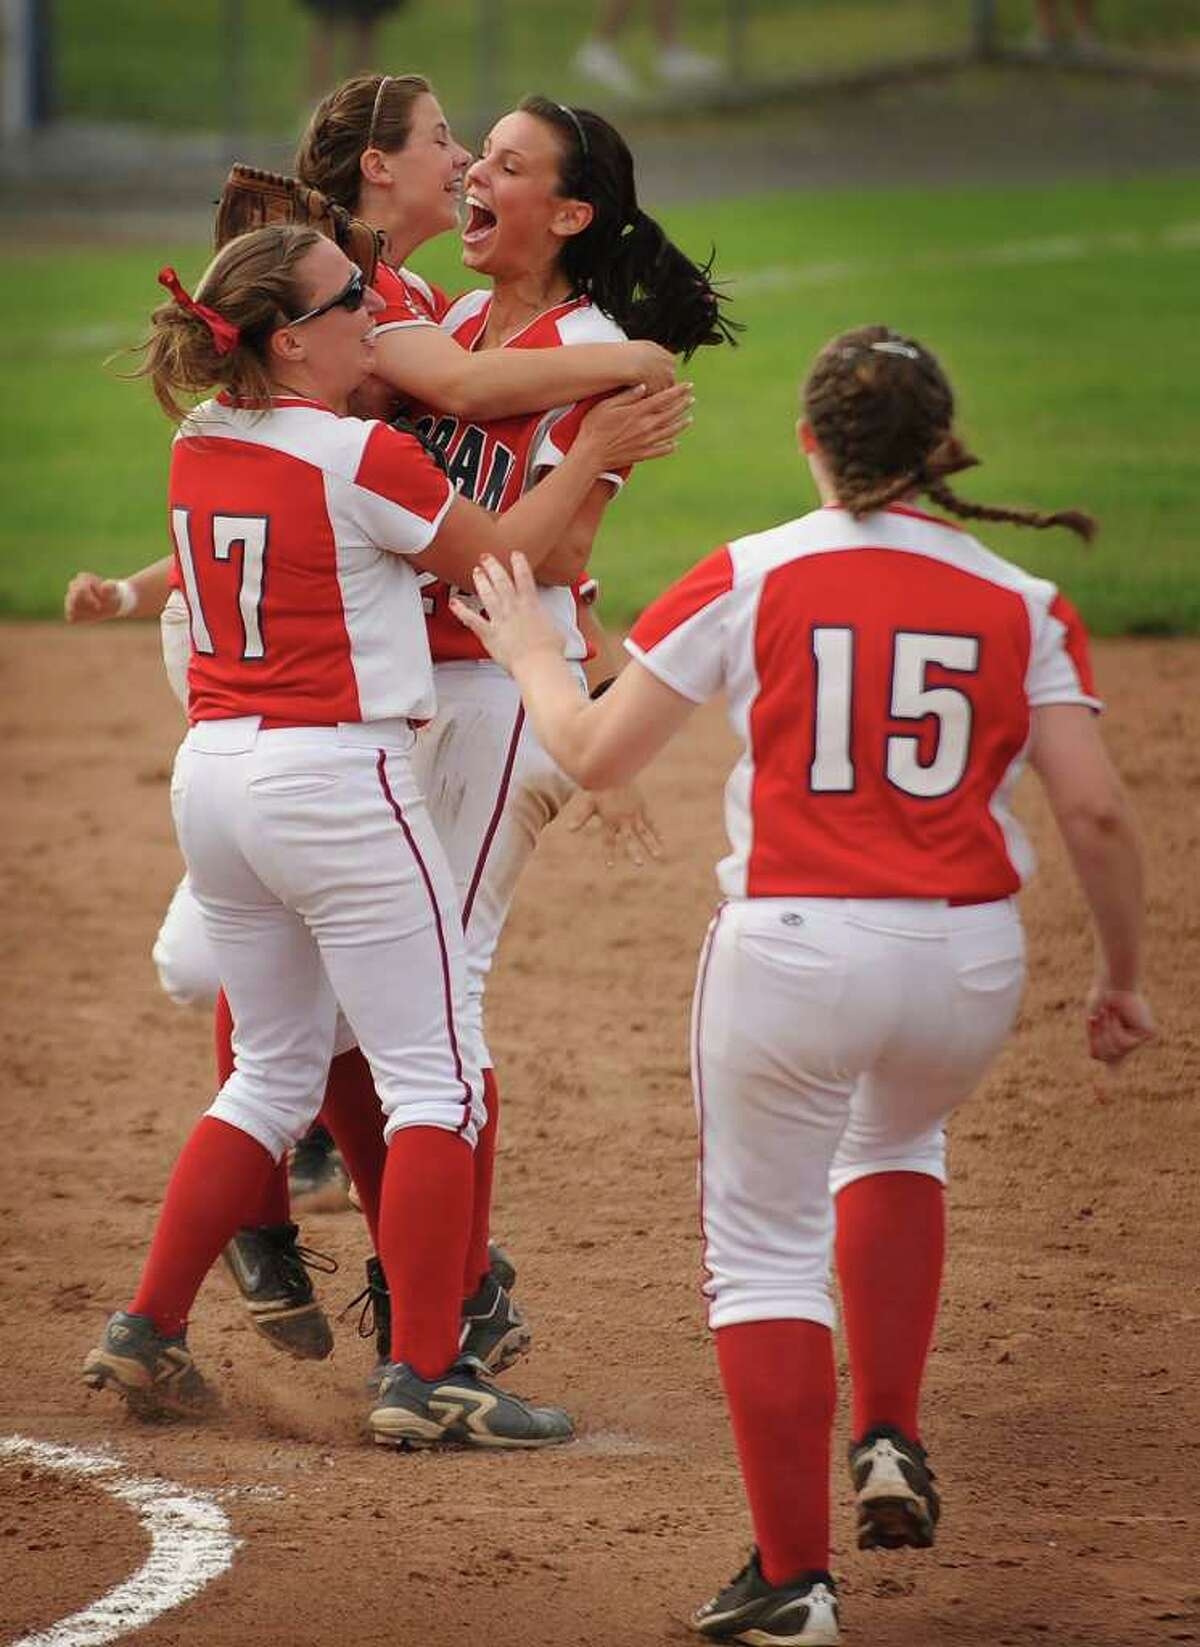 Foran players charge the mound in celebration after defeating Bacon Academy 3-0 in the Class L state softball championships at West Haven High School on Monday, June 13, 2011. Winning pitcher Taylor Harkness, left, was named tournament MVP.